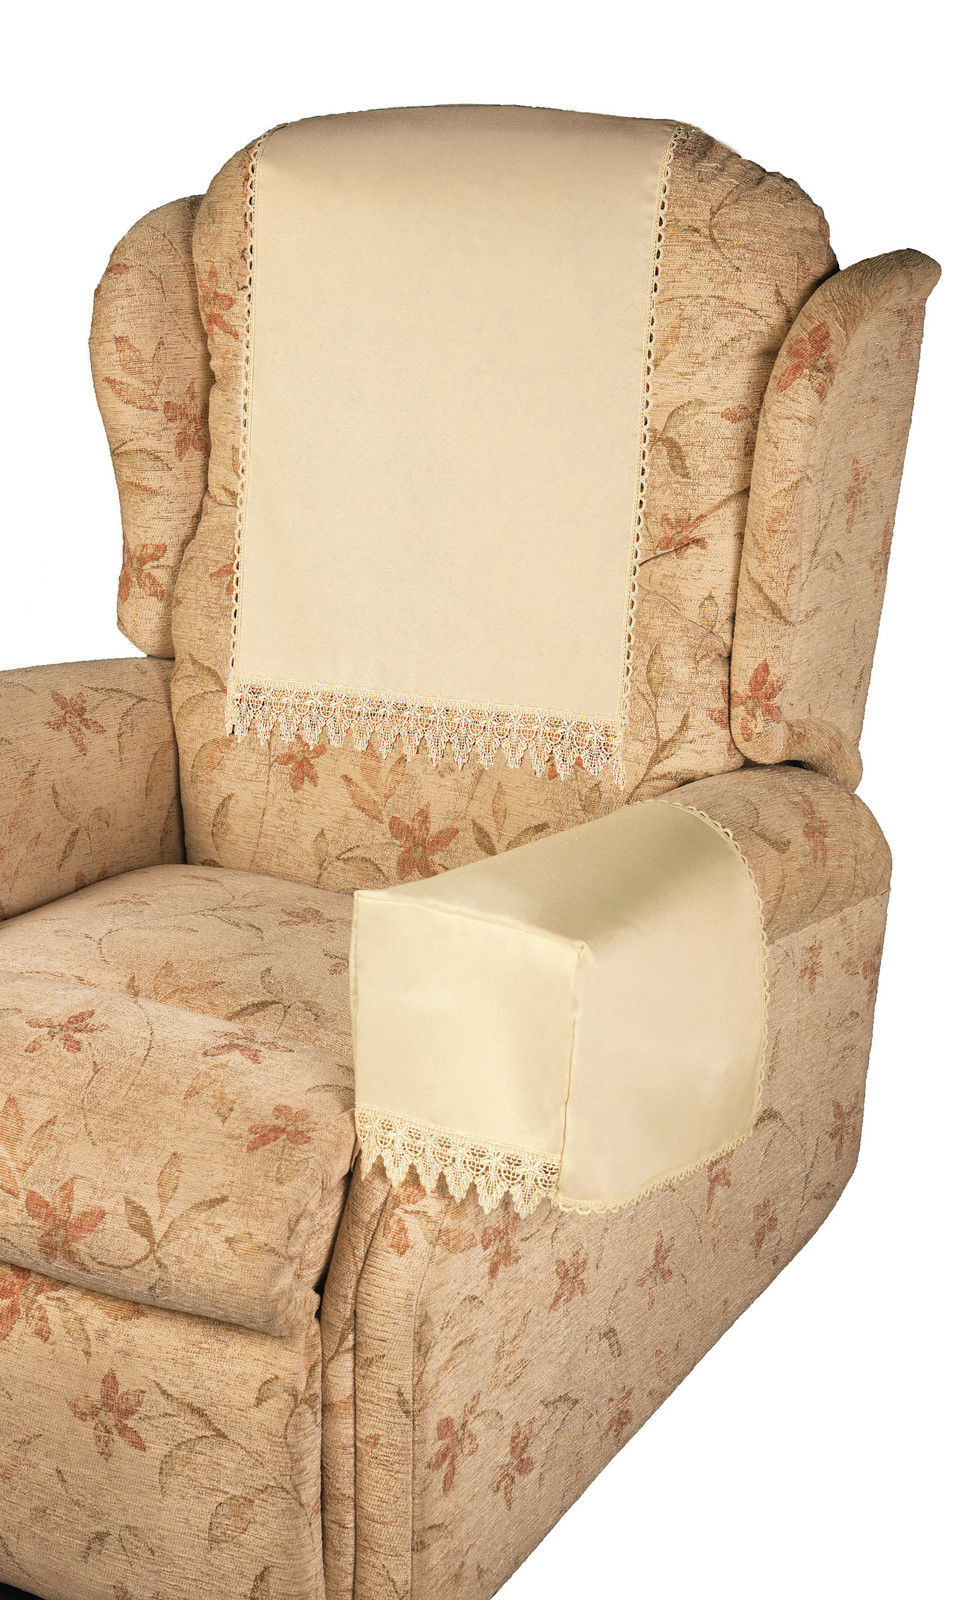 Comet cream 6 chair arm covers